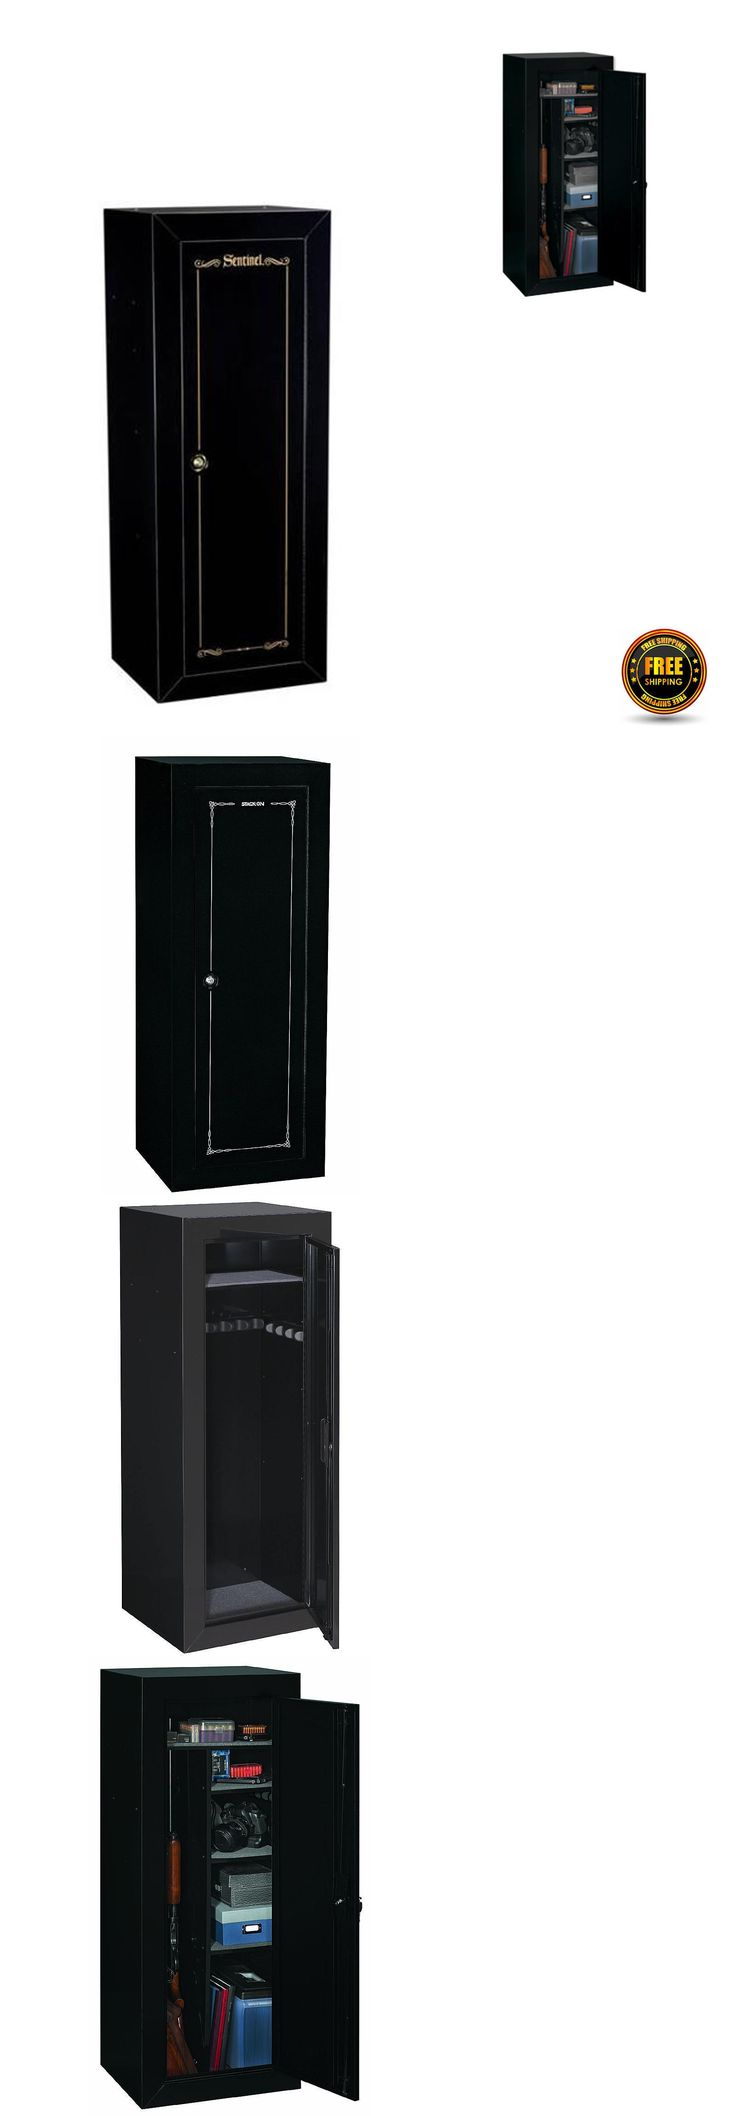 Cabinets and Safes 177877: Stack On Gun Safes And Vaults For Home 18 Steel Security Cabinet Storage Rifle BUY IT NOW ONLY: $211.96